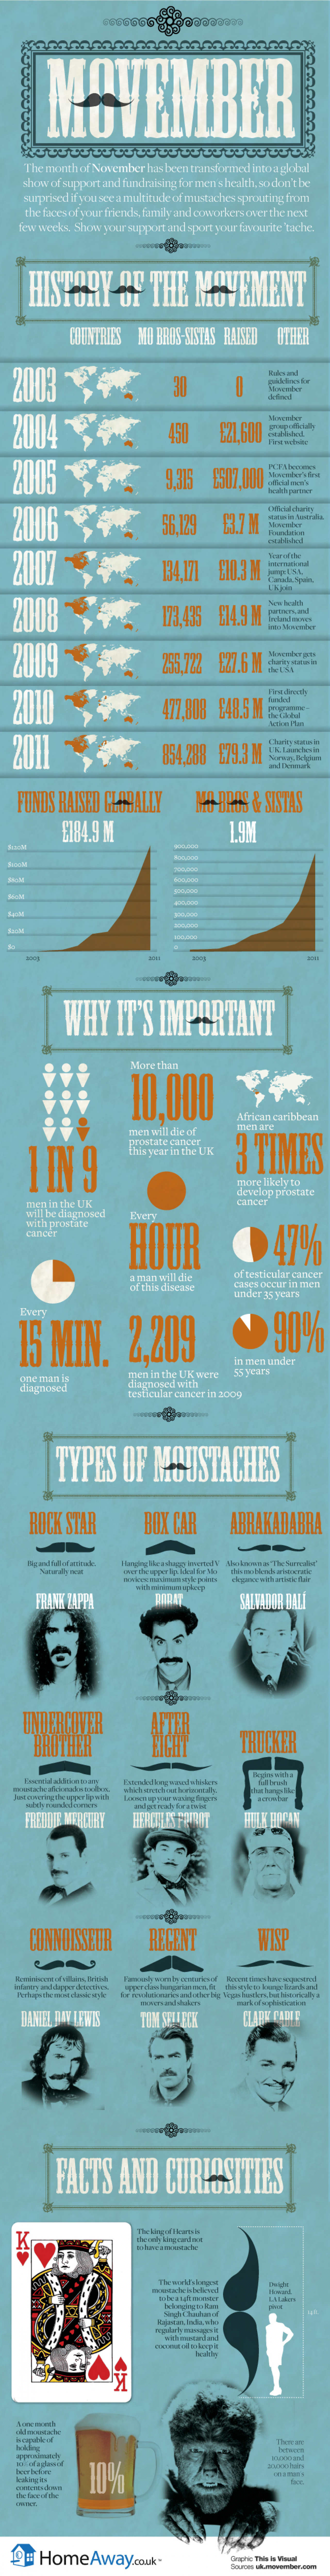 Movember 2012: history and curiosities Infographic